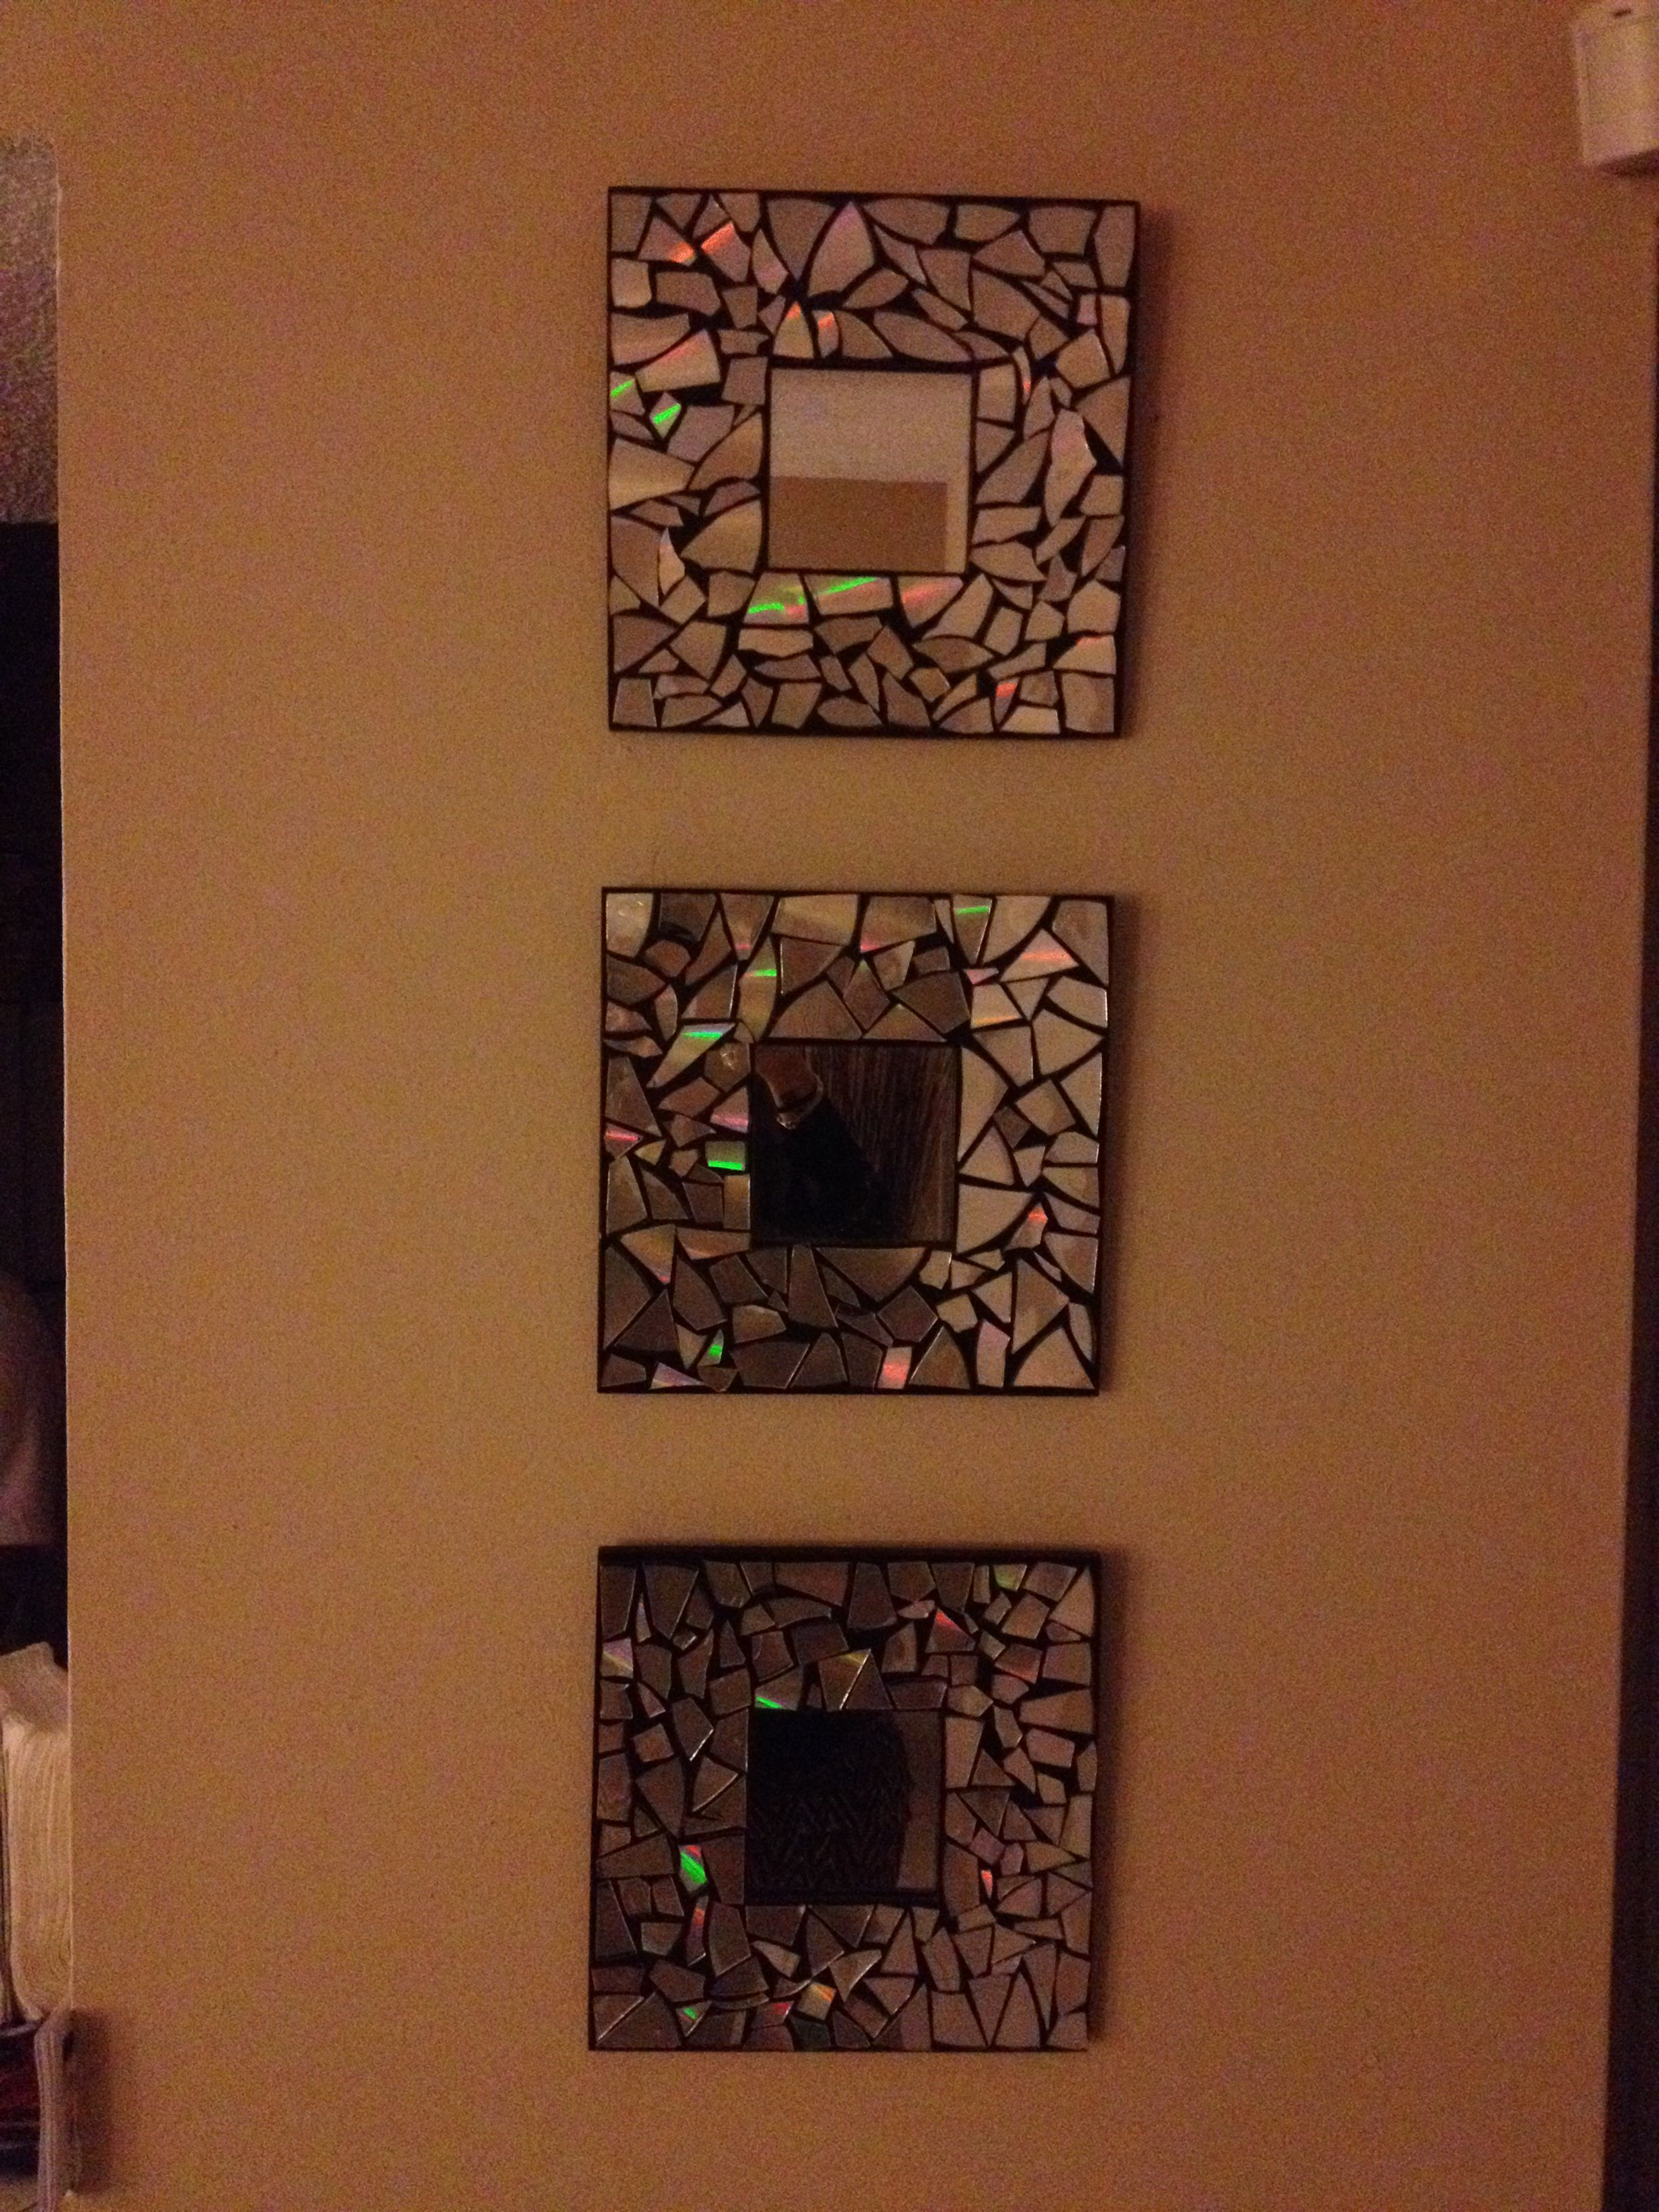 DIY: IKEA MALMA mirrors $1.99 each. Cut up some cd's and hot glue